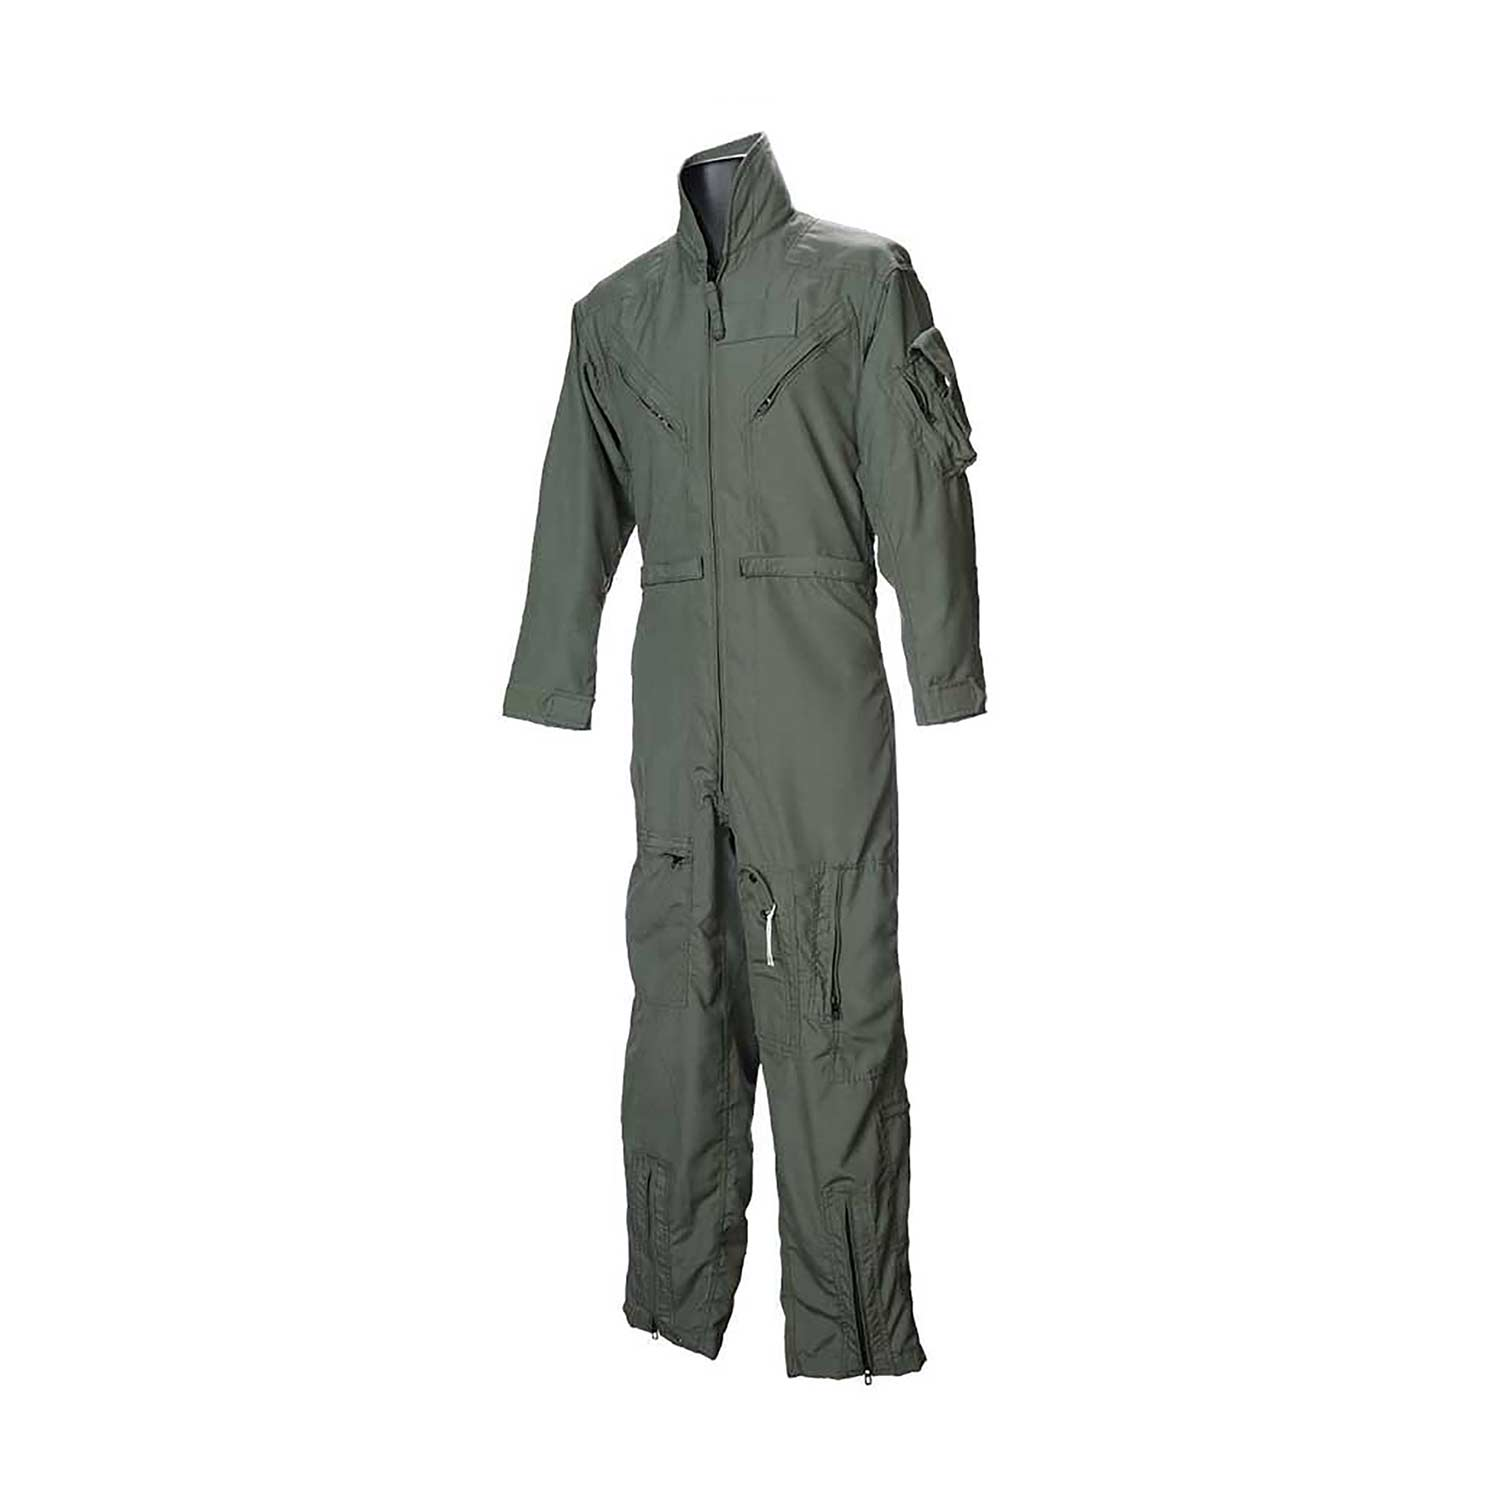 BasicApparel Nomex CWU-27/P Flight Suit